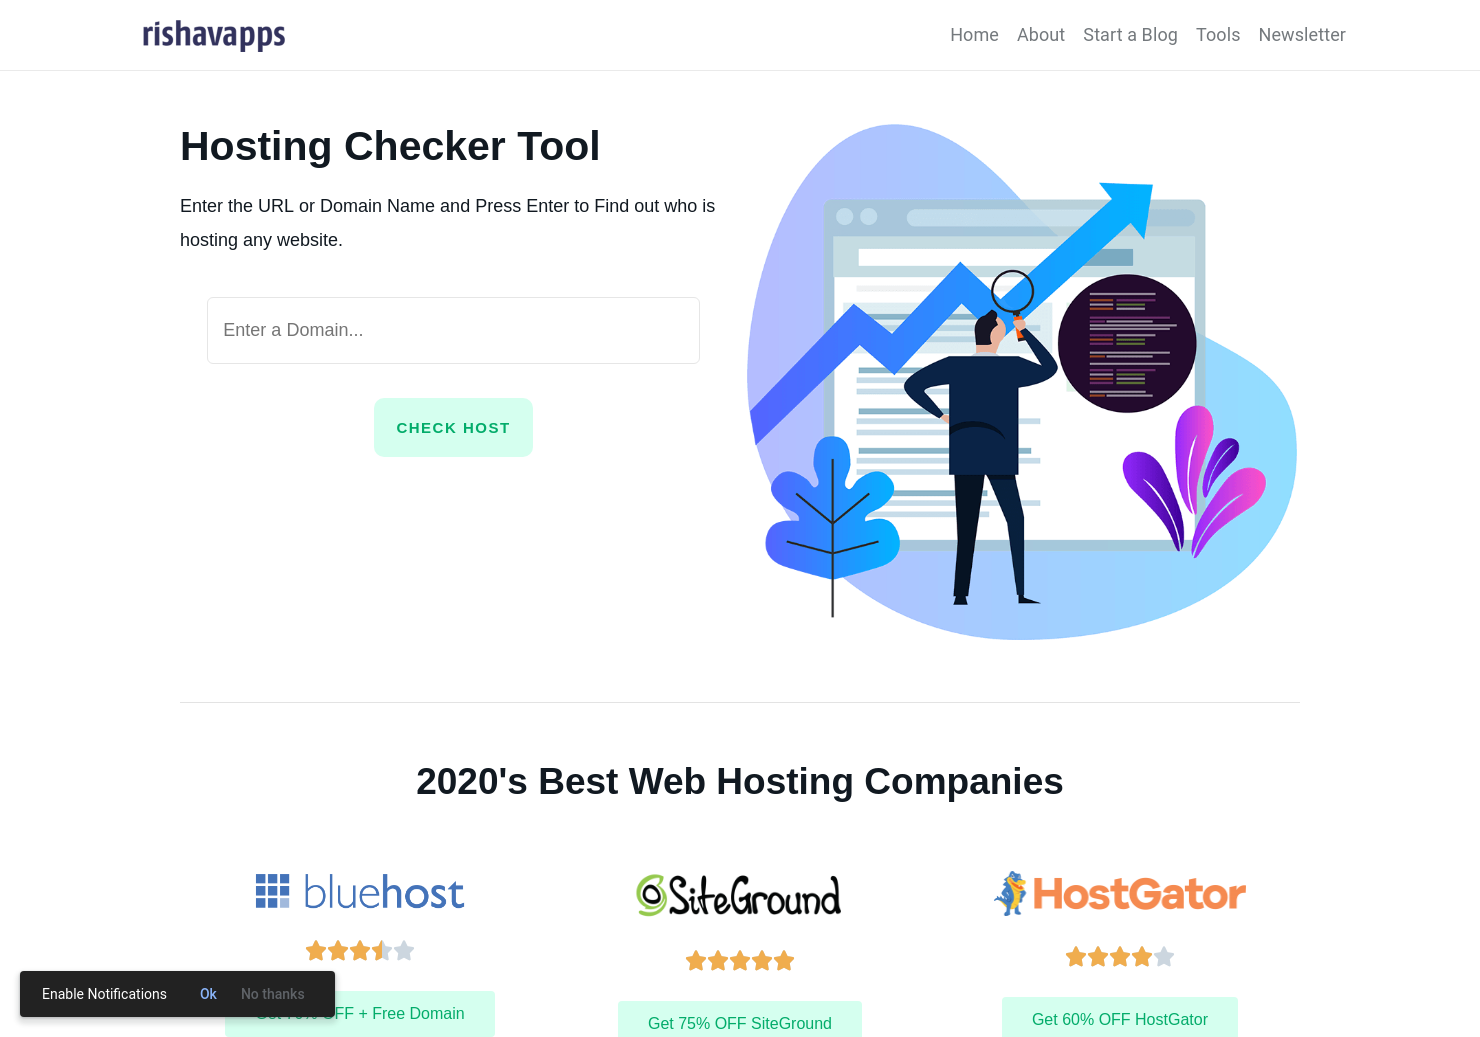 Hosting Checker